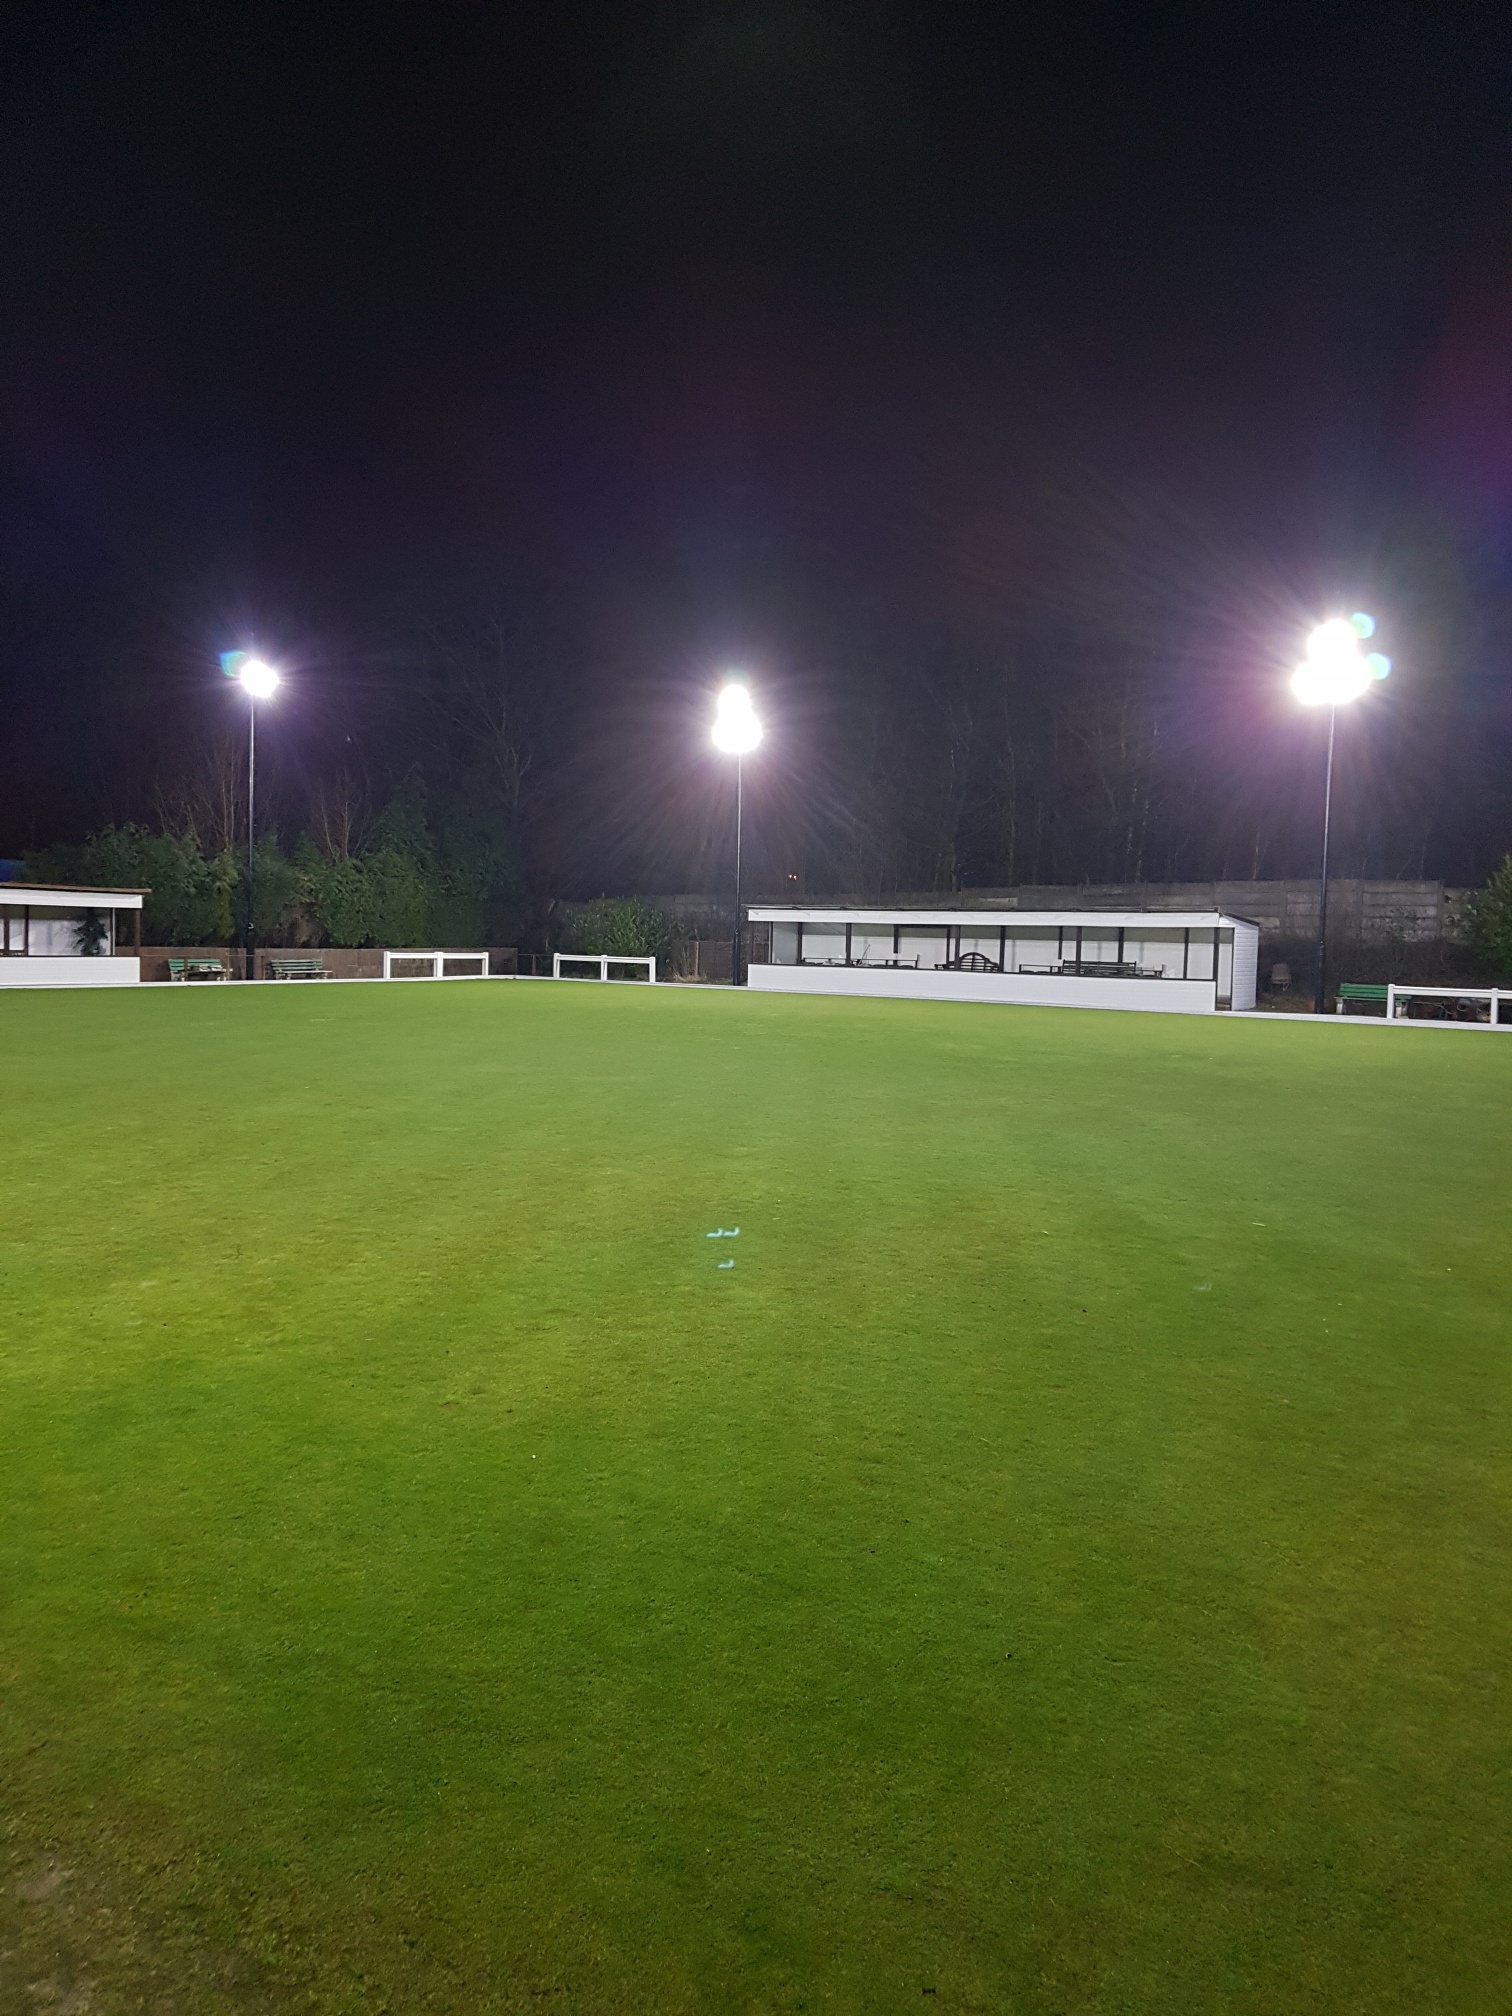 Green with Floodlights